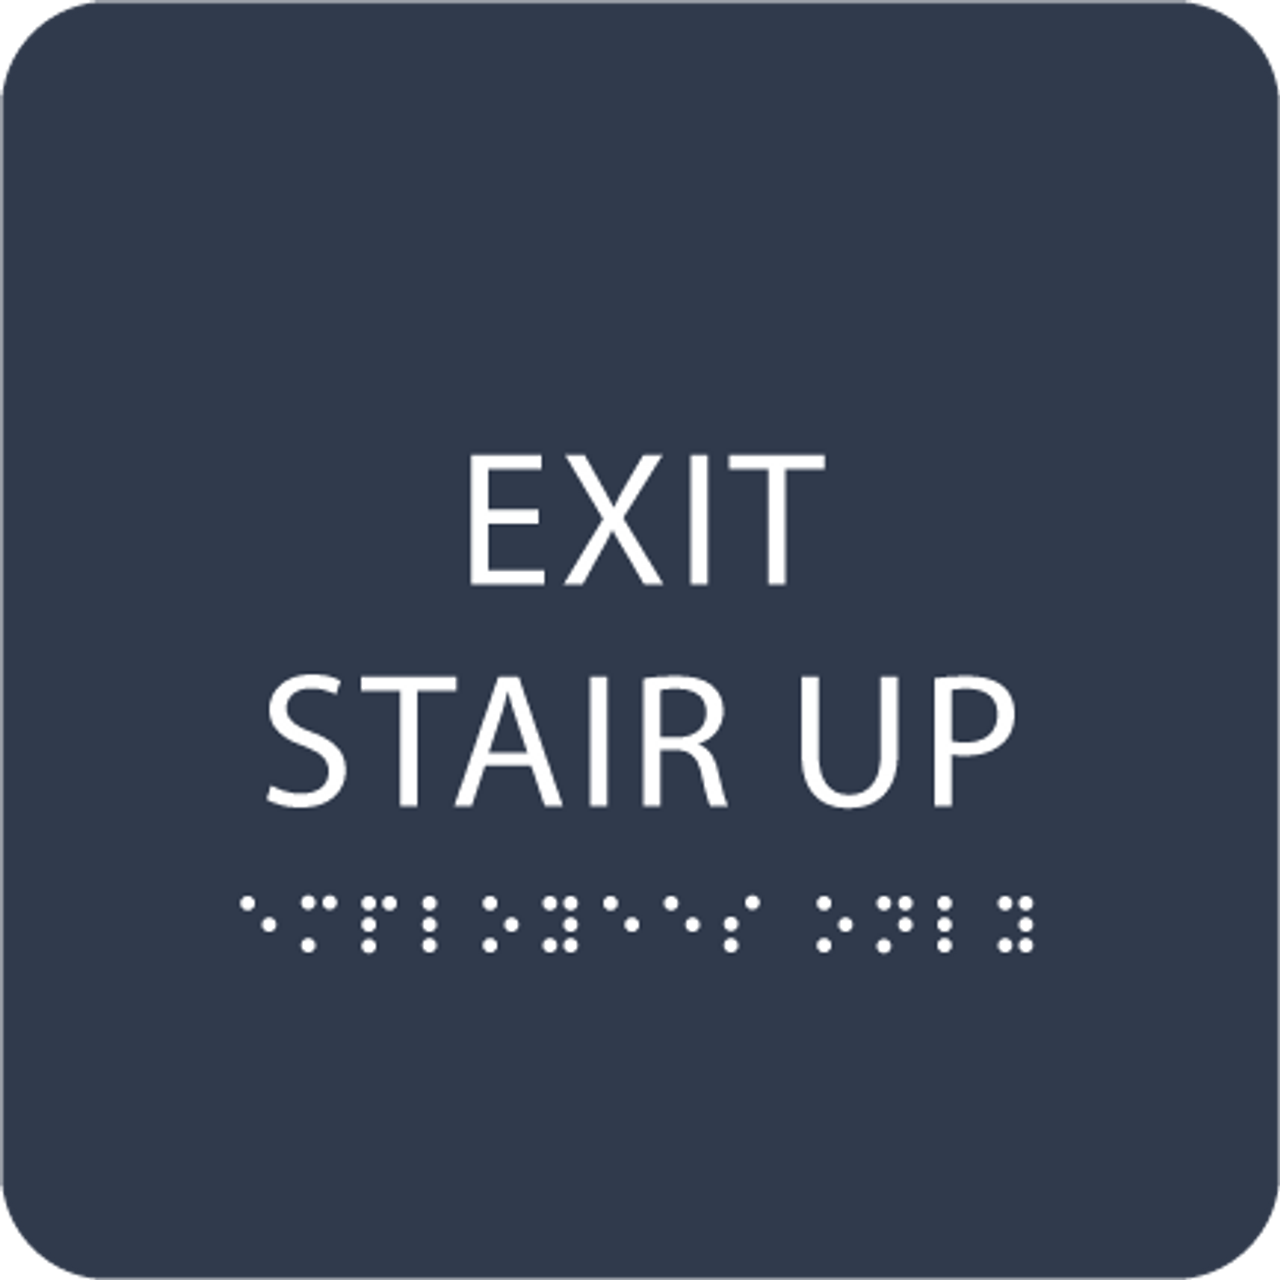 Navy Exit Stair Up ADA Sign